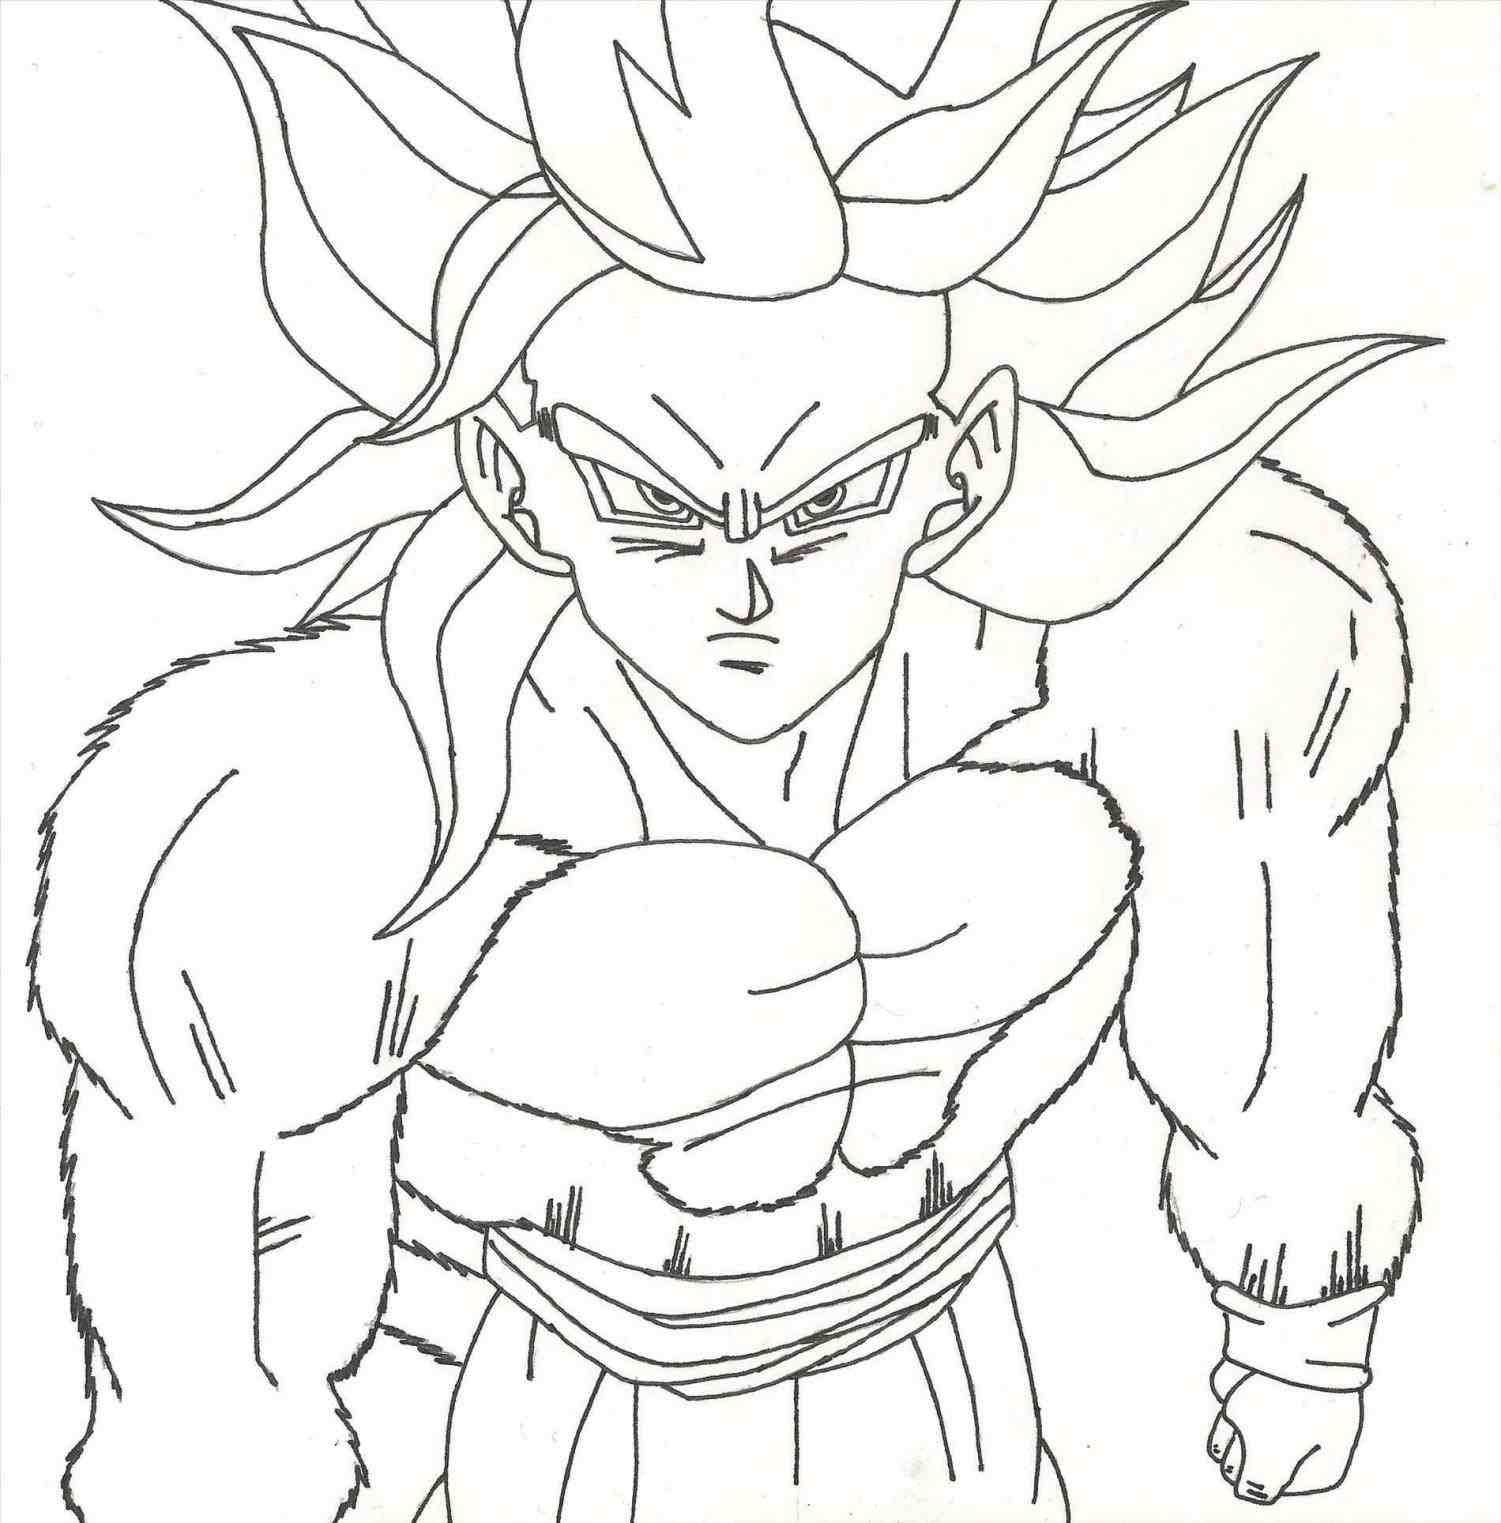 Goku Ssgss Drawing at GetDrawings | Free download